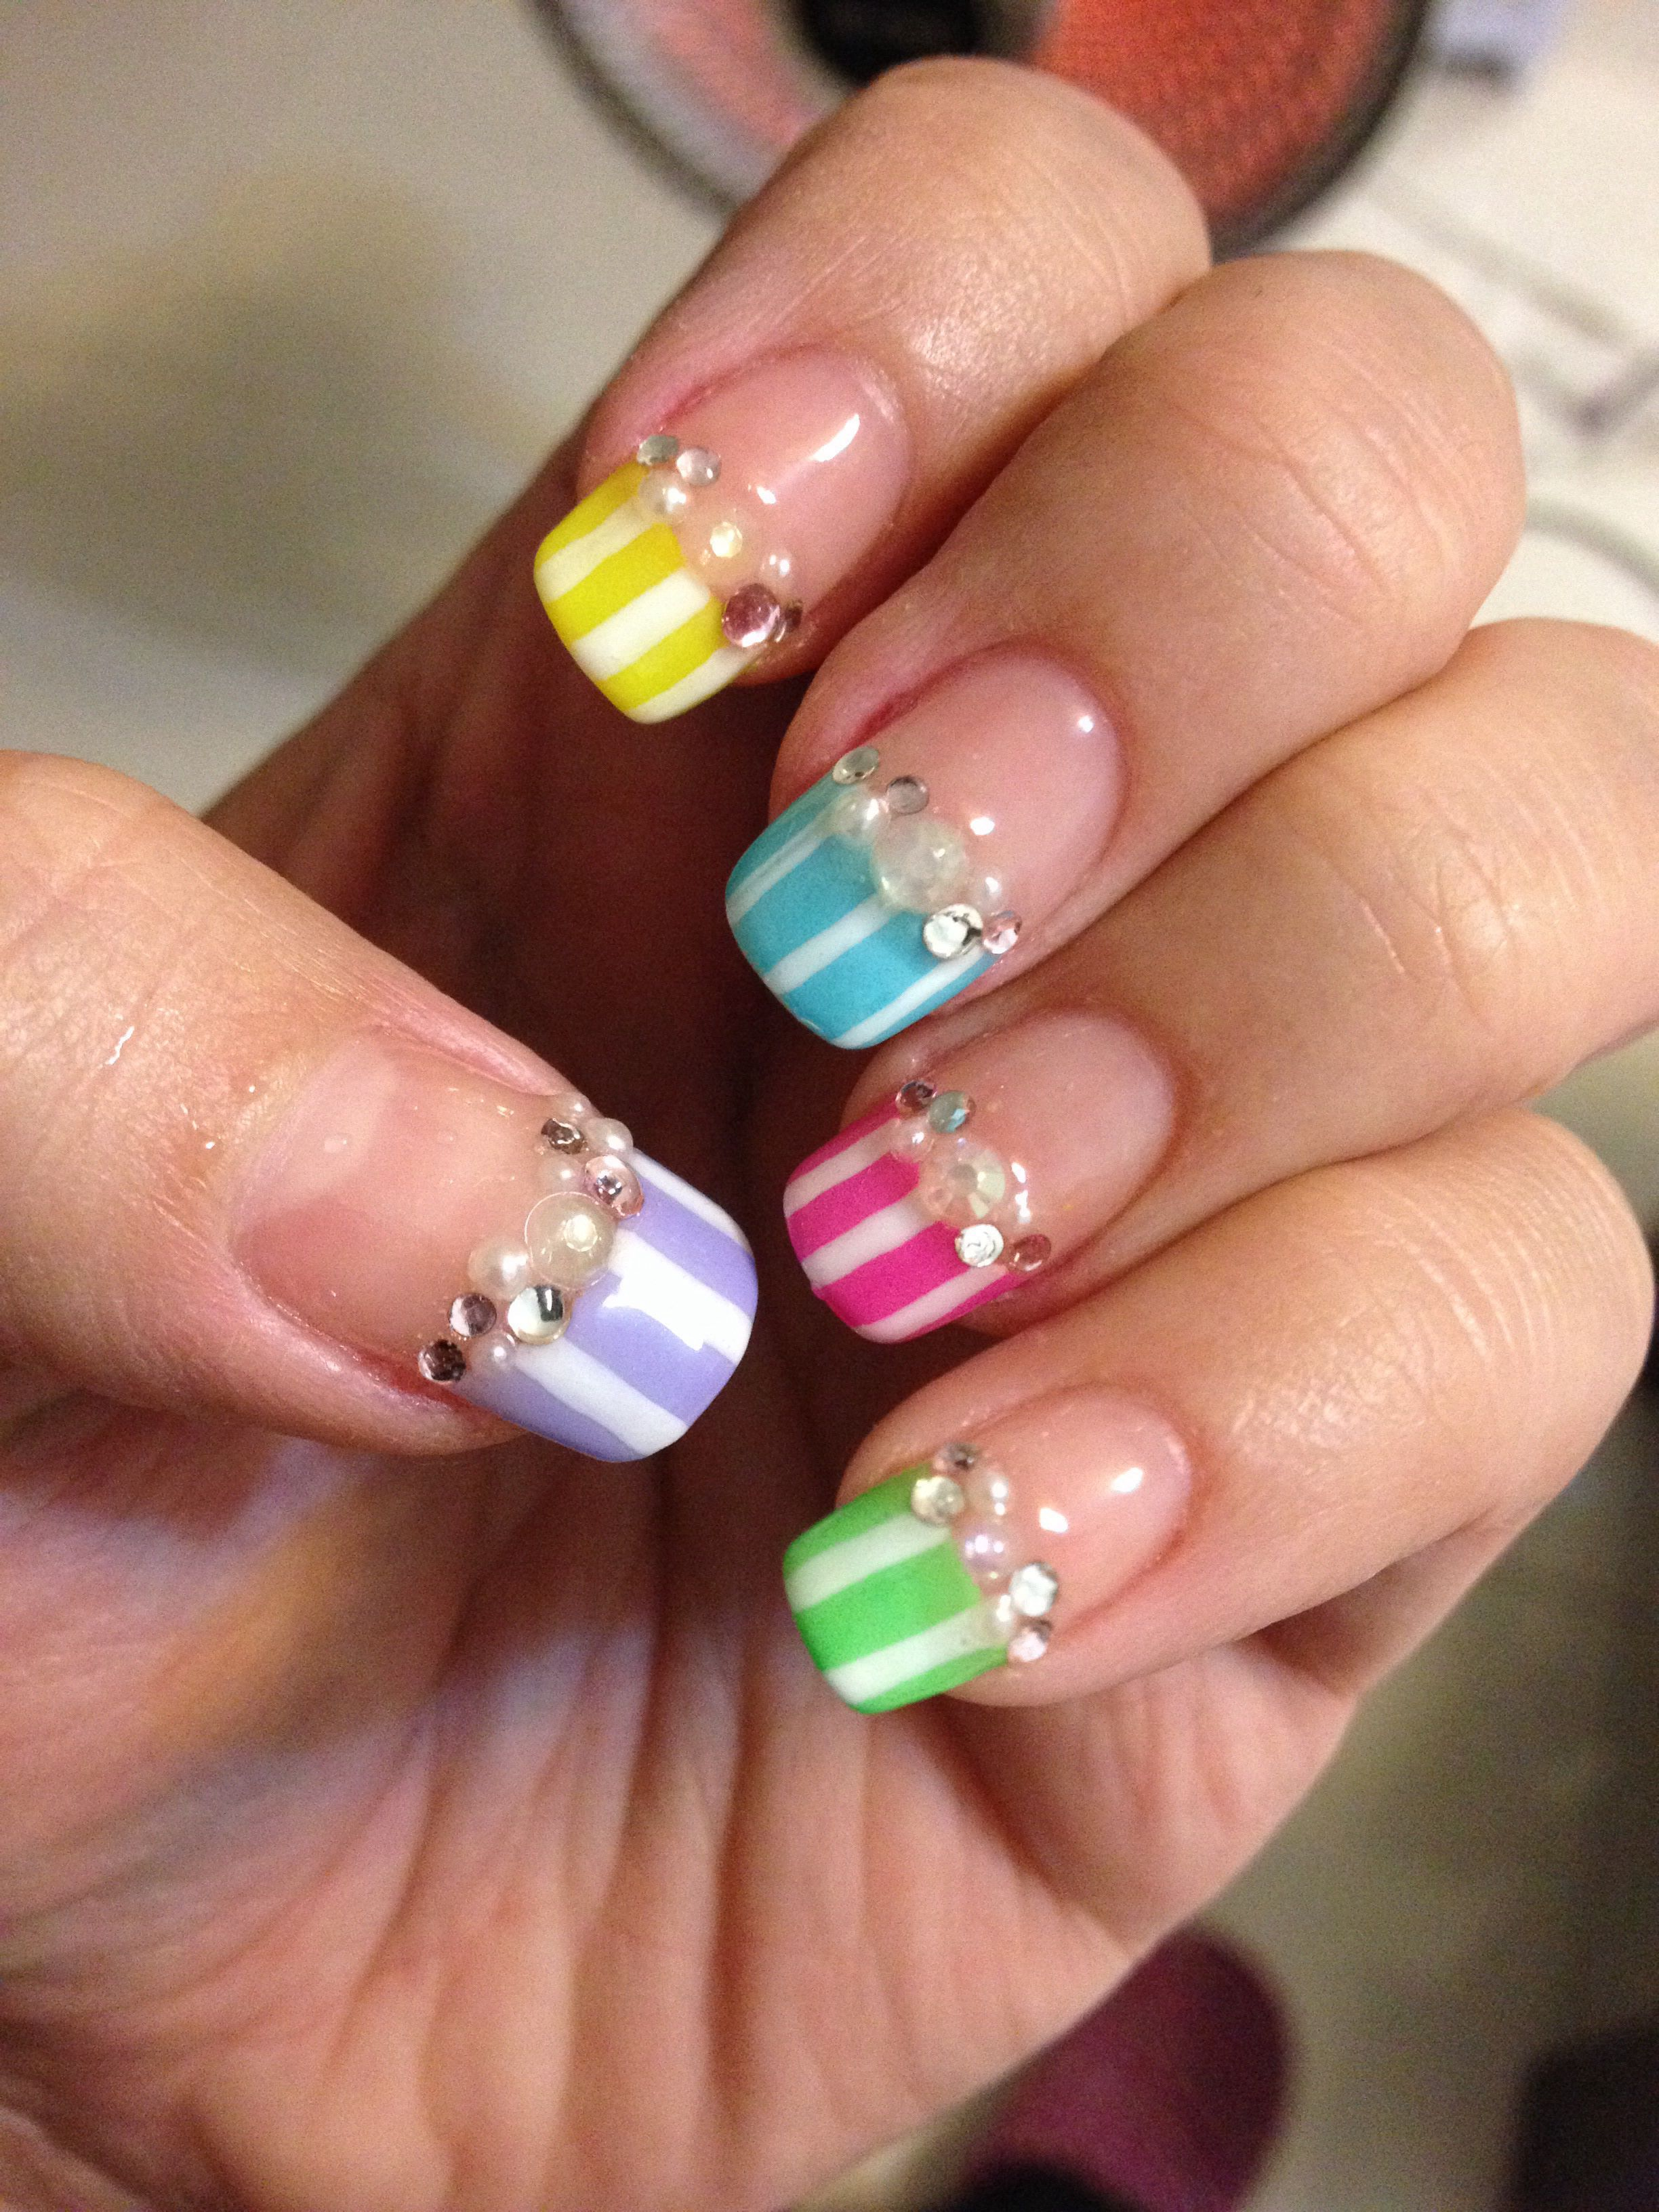 Lumi strips French nails | Nail art ideas | Pinterest | French nails